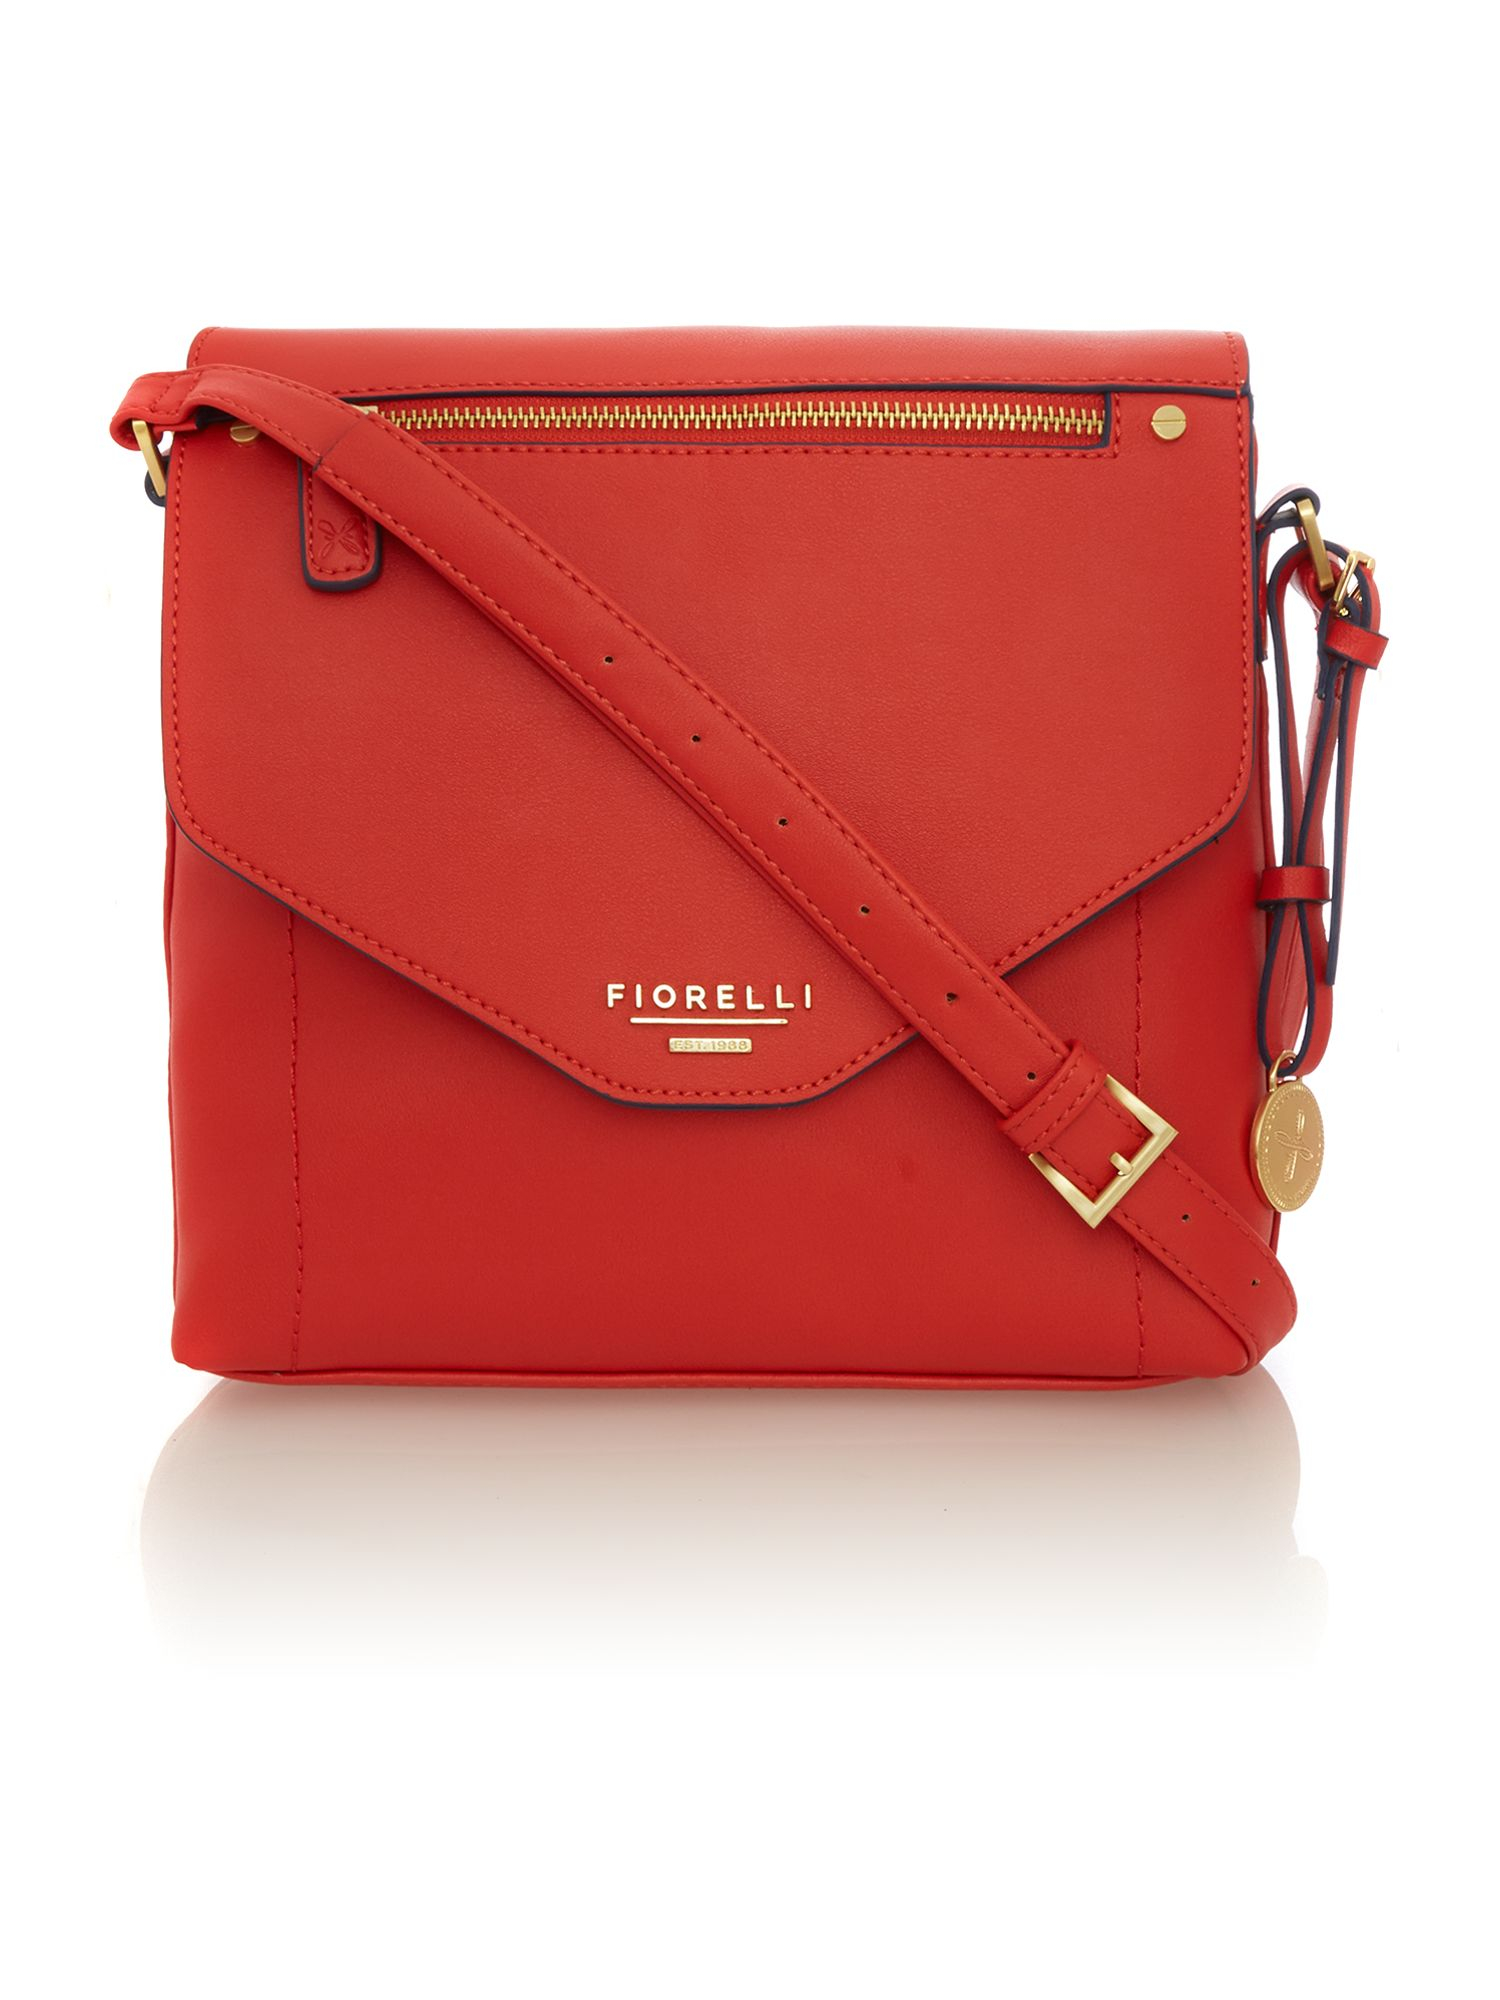 knockoff chloe handbags - Fiorelli Chloe Red Crossbody Bag in Red | Lyst